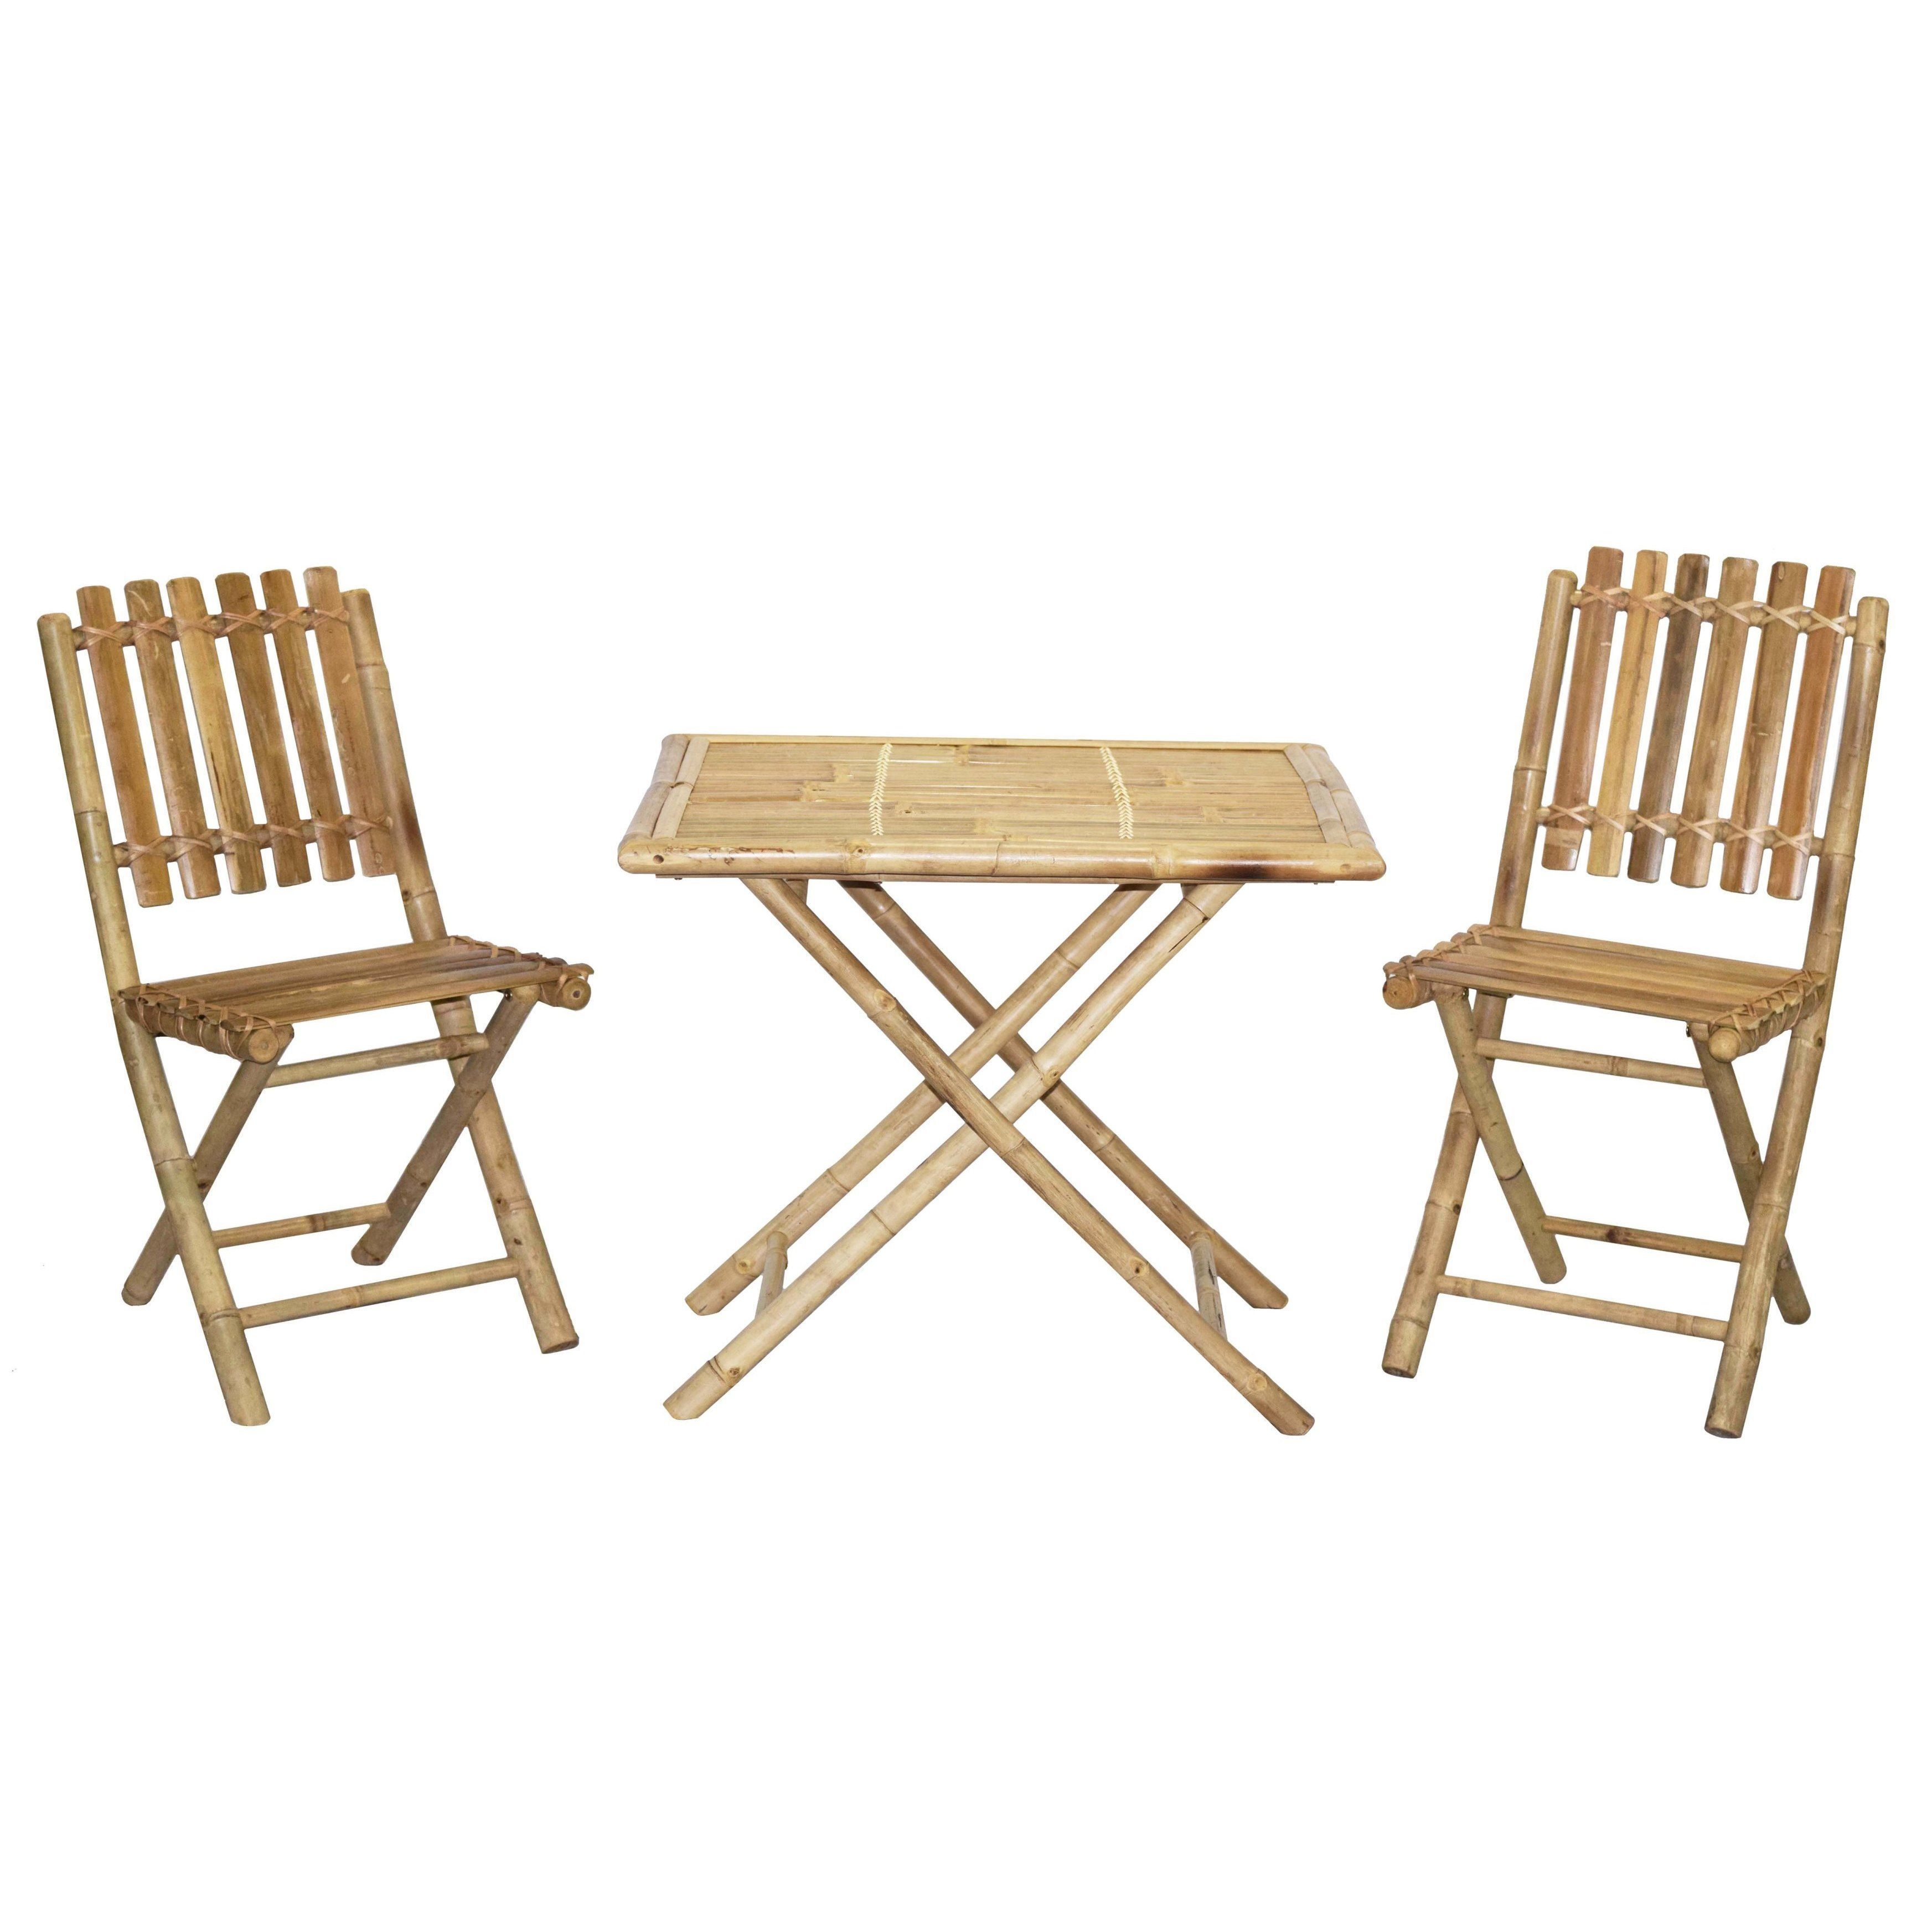 Bistro Bamboo Table And 2 Chairs Patio Set (Vietnam) | Overstock.com  Shopping